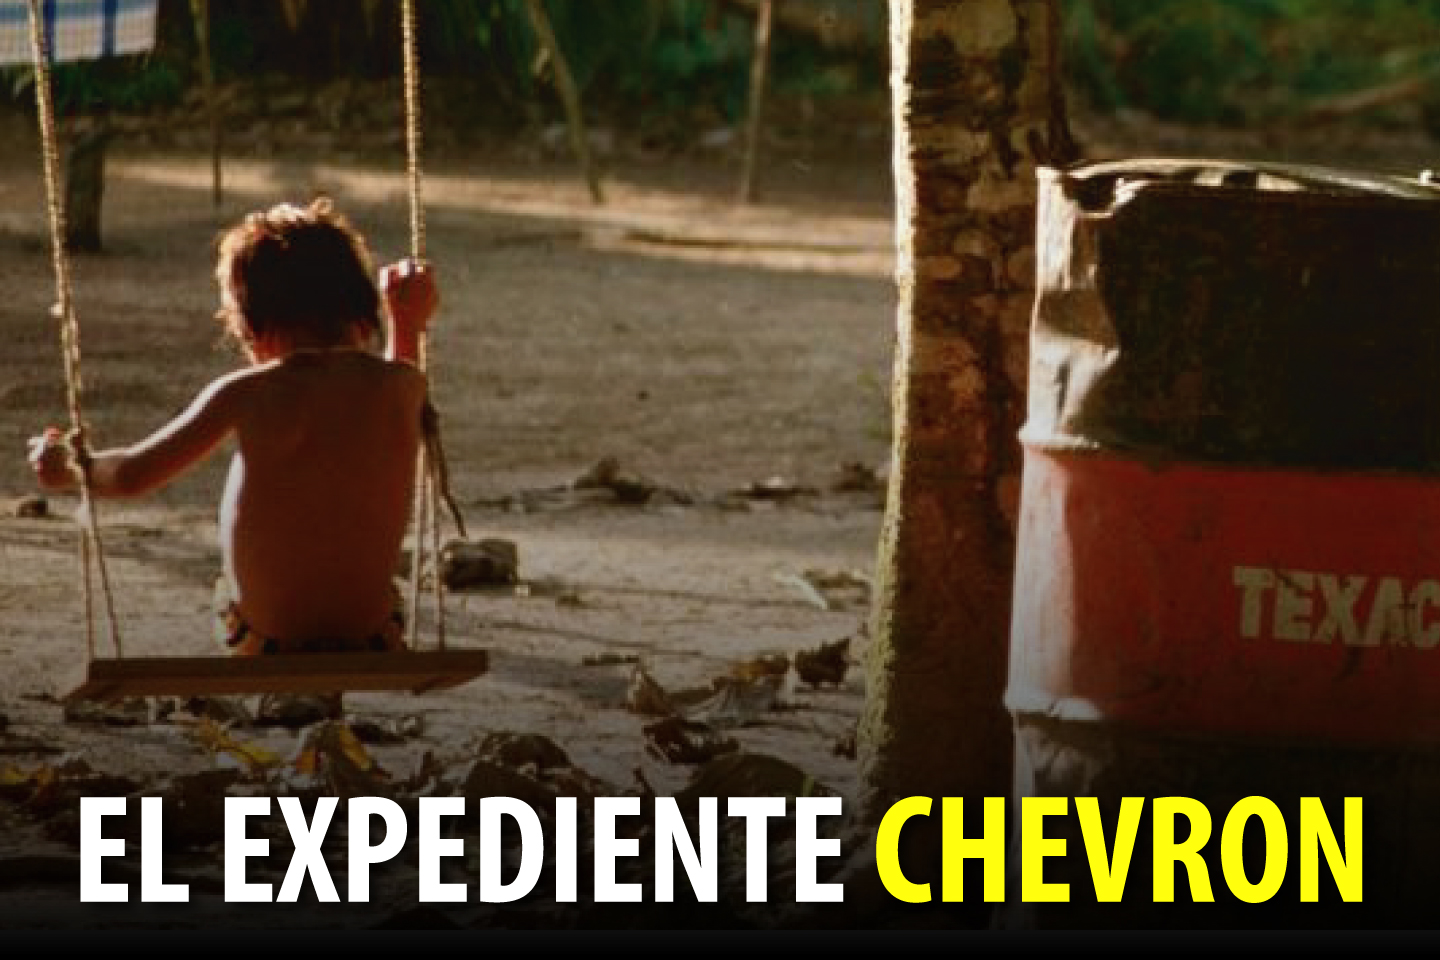 EL EXPEDIENTE CHEVRON